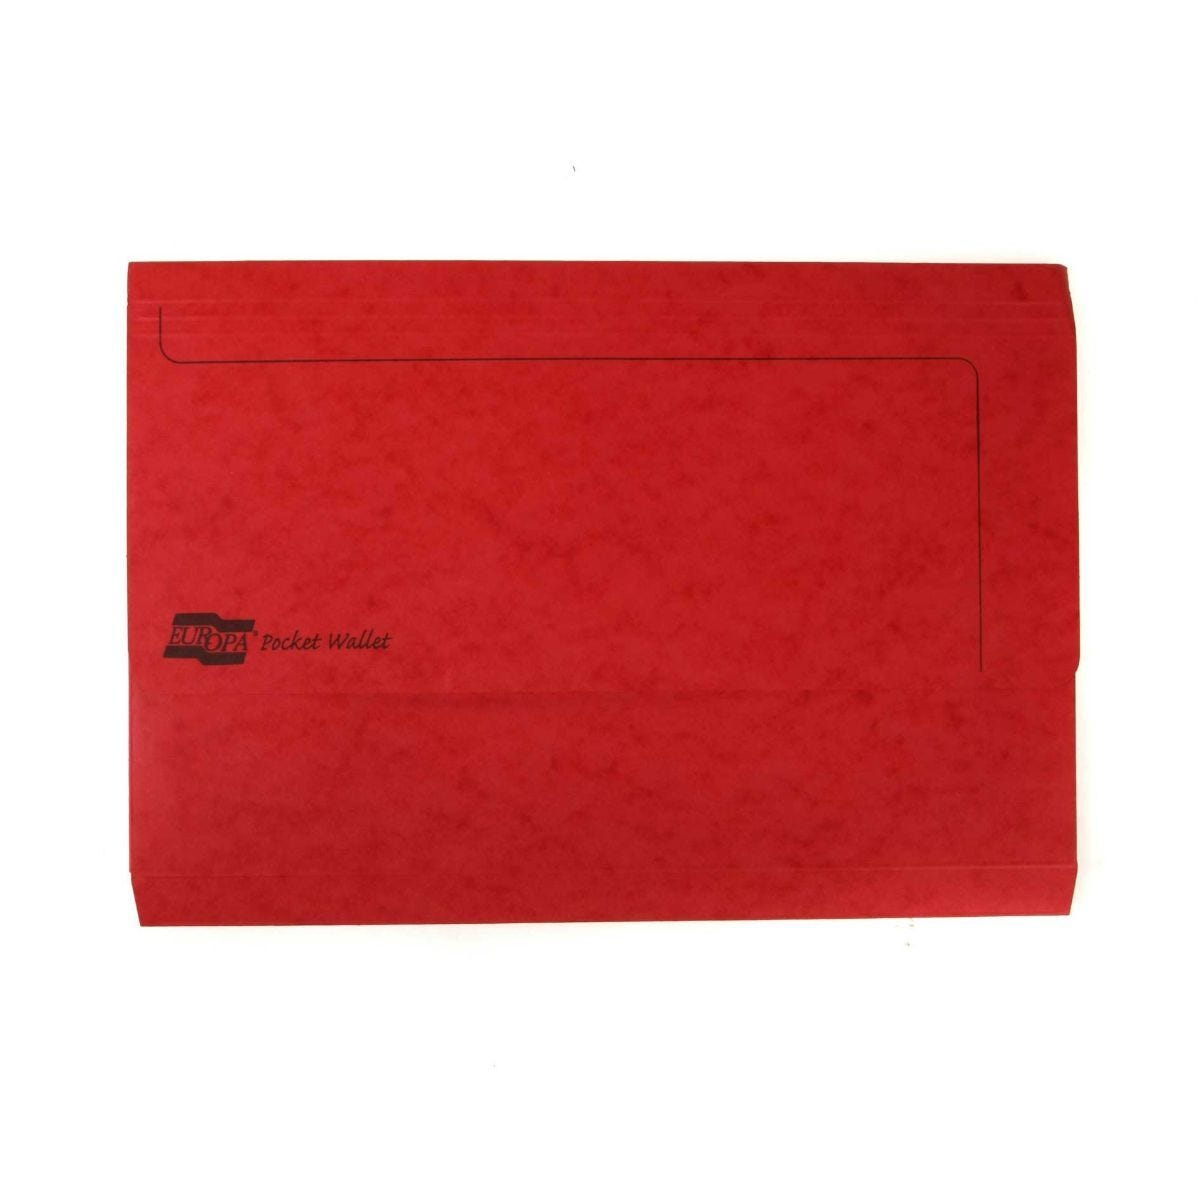 Europa Pocket Wallets Foolscap Pack of 25 Red